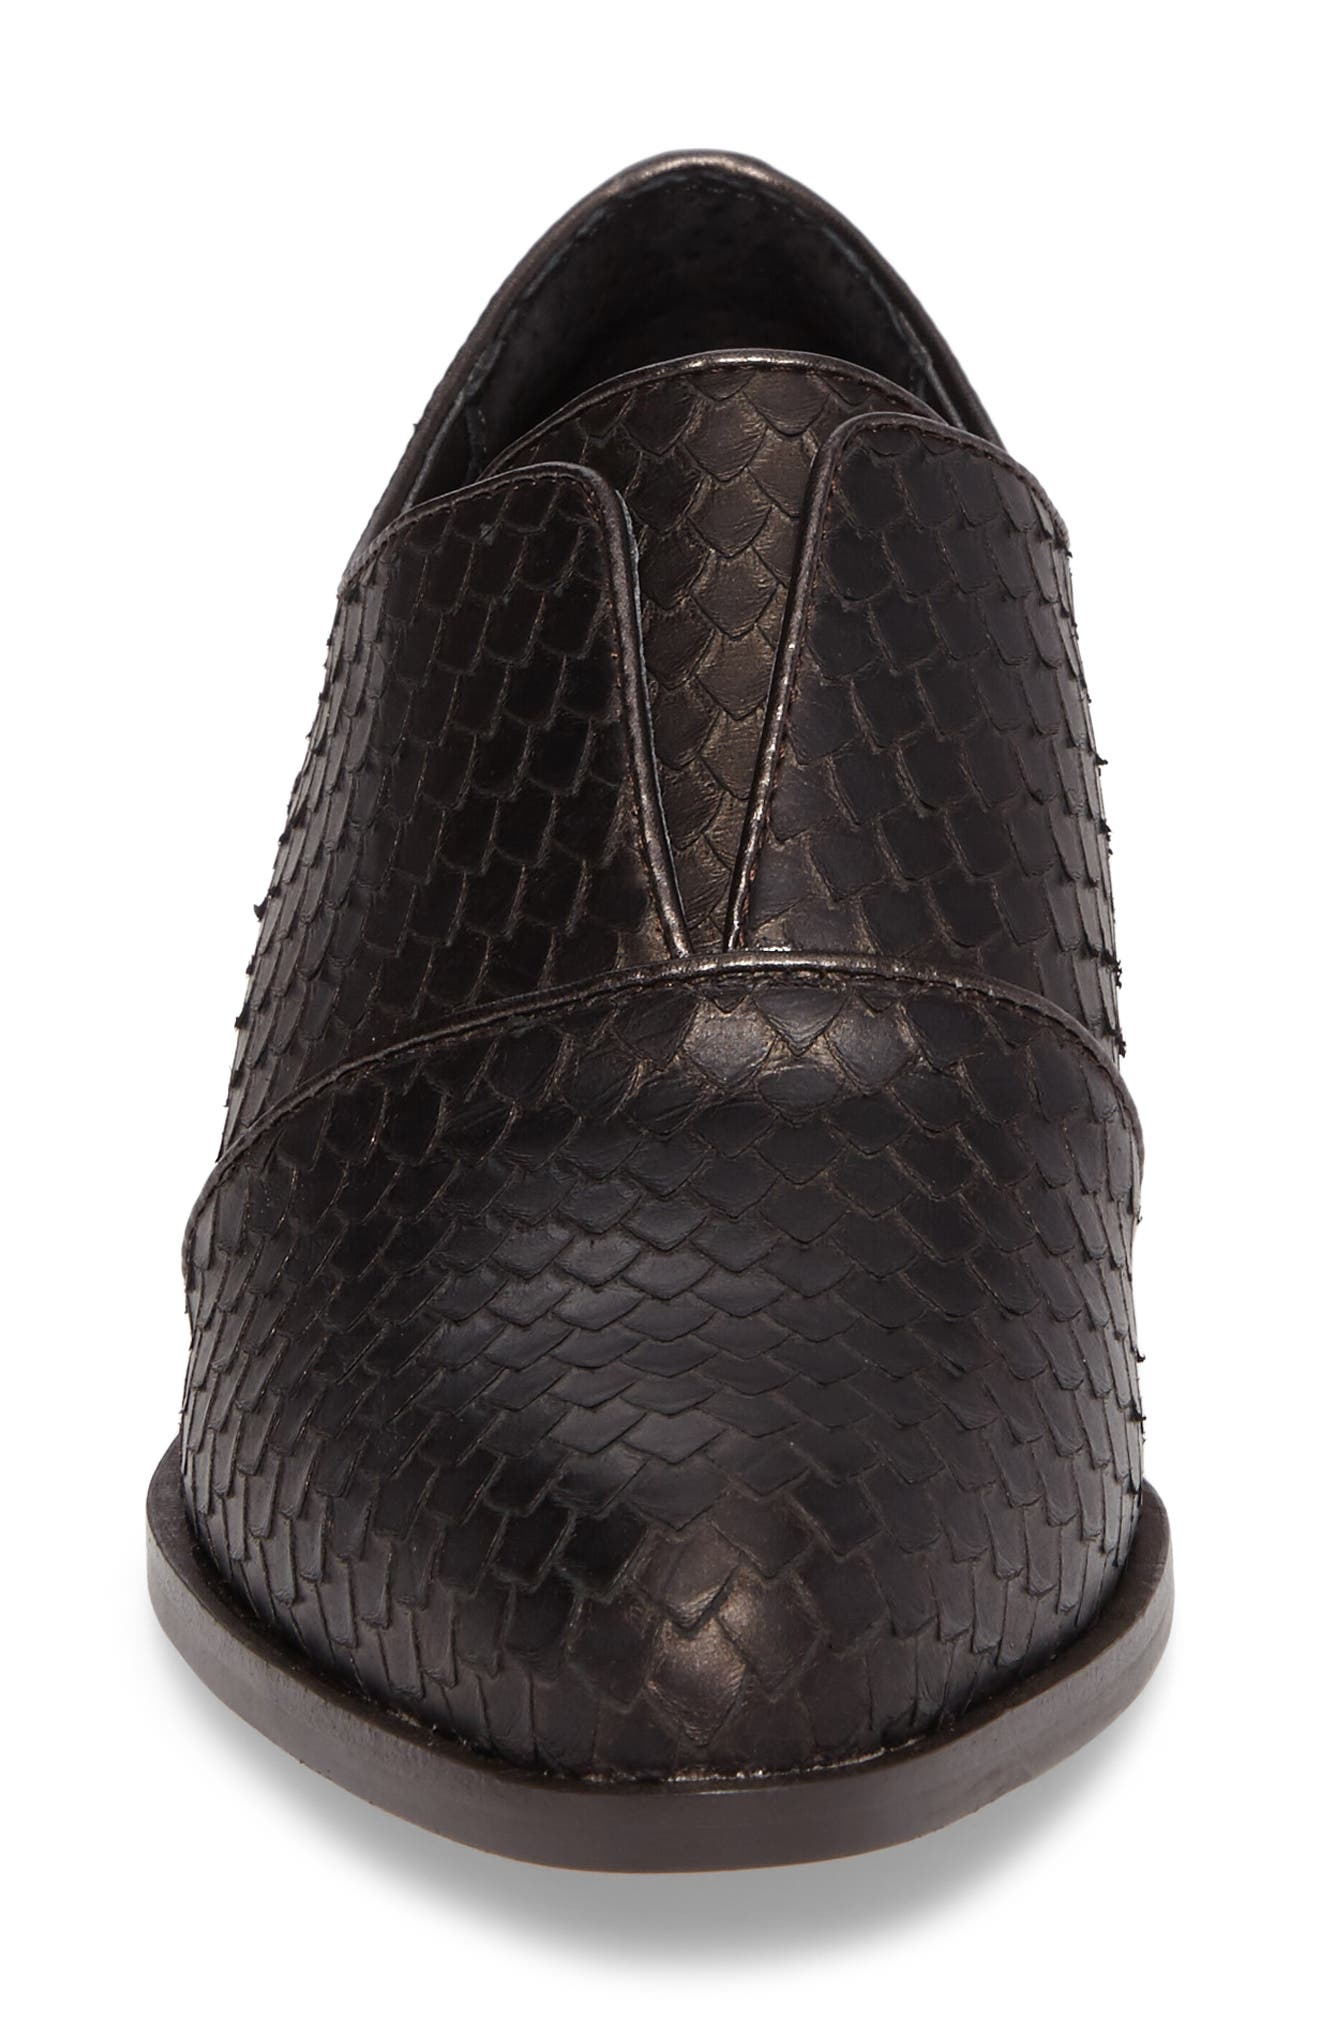 Isola Maria Slip-On Oxford,                             Alternate thumbnail 4, color,                             T. MORO BROWN LEATHER